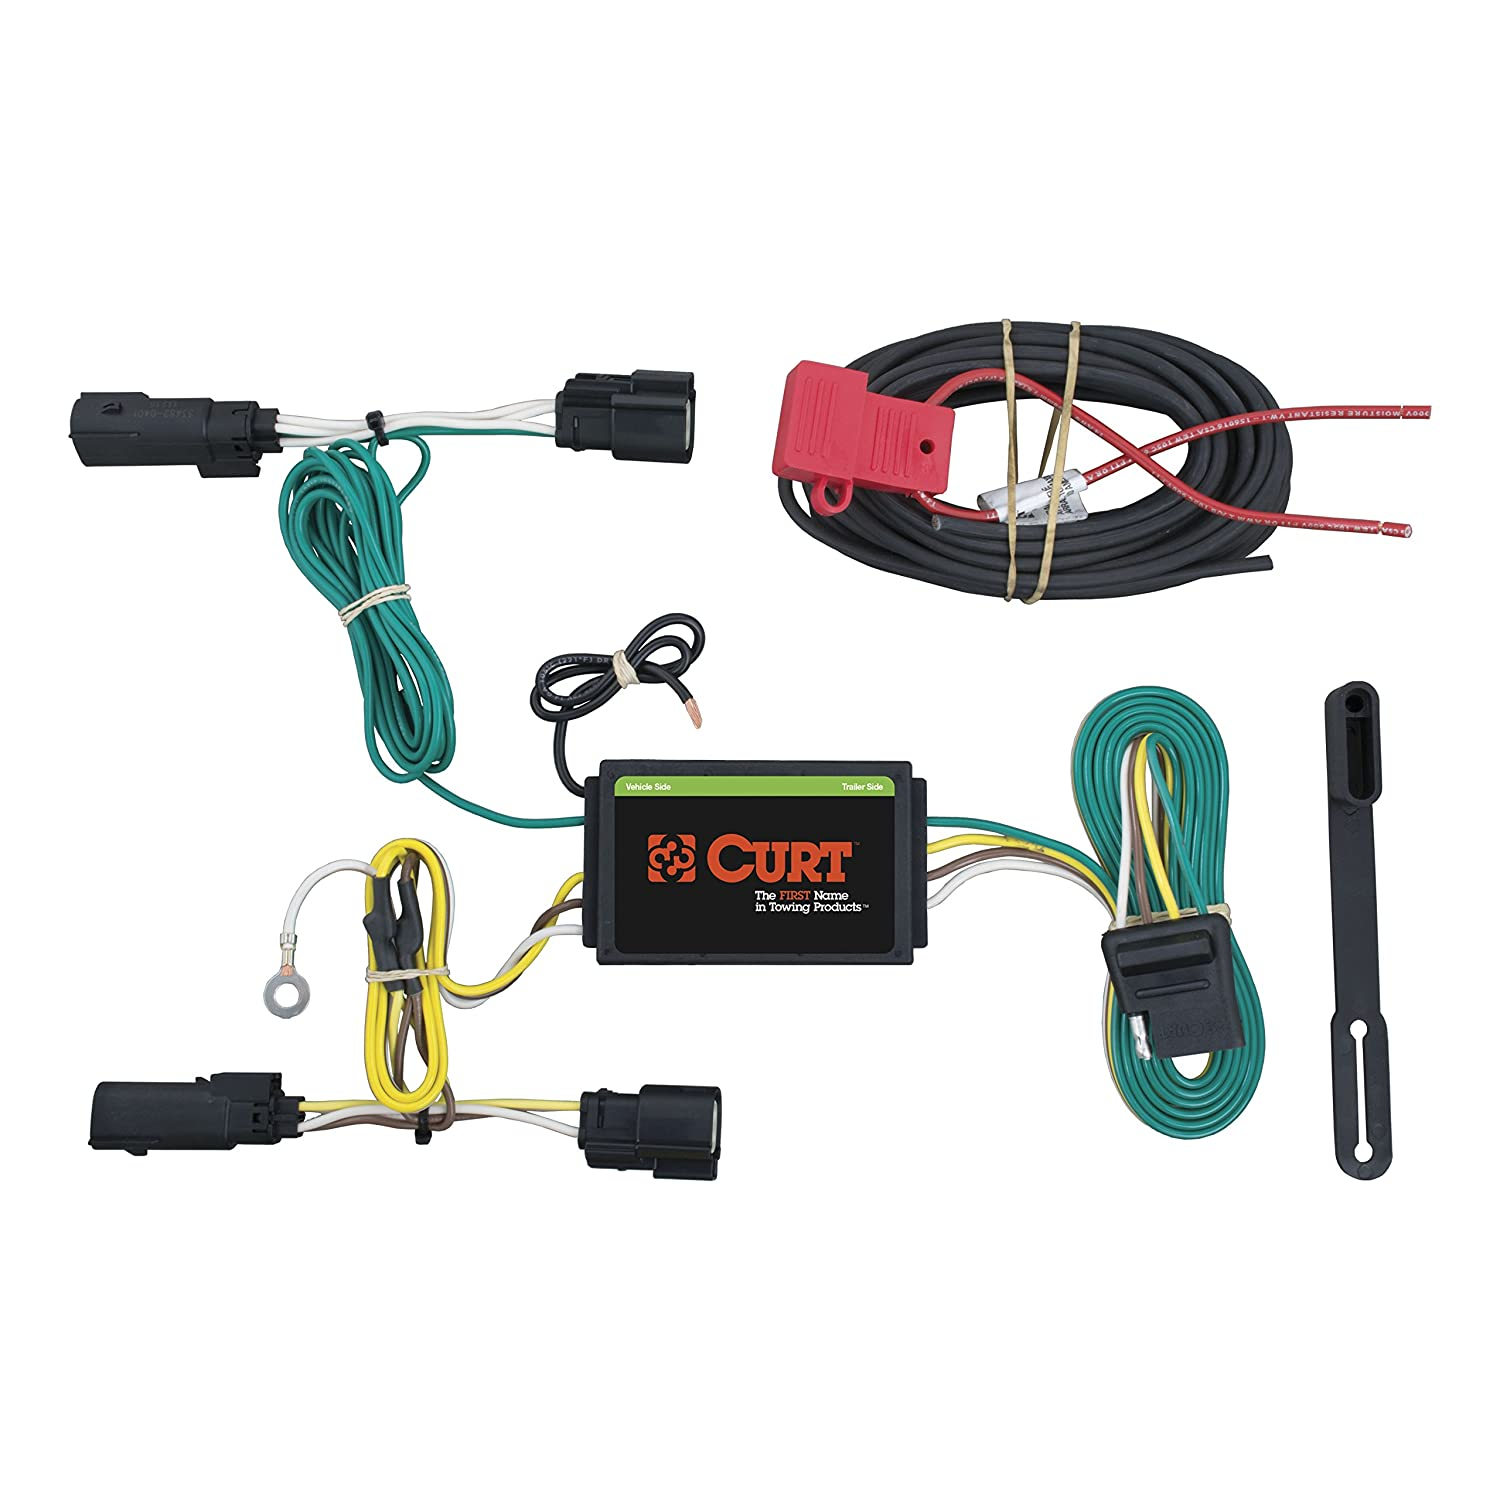 Ford Trailer Plug Harness Reinvent Your Wiring Diagram Avalanche Amazon Com Curt 56249 Custom Automotive Rh F 350 09 Brake Control